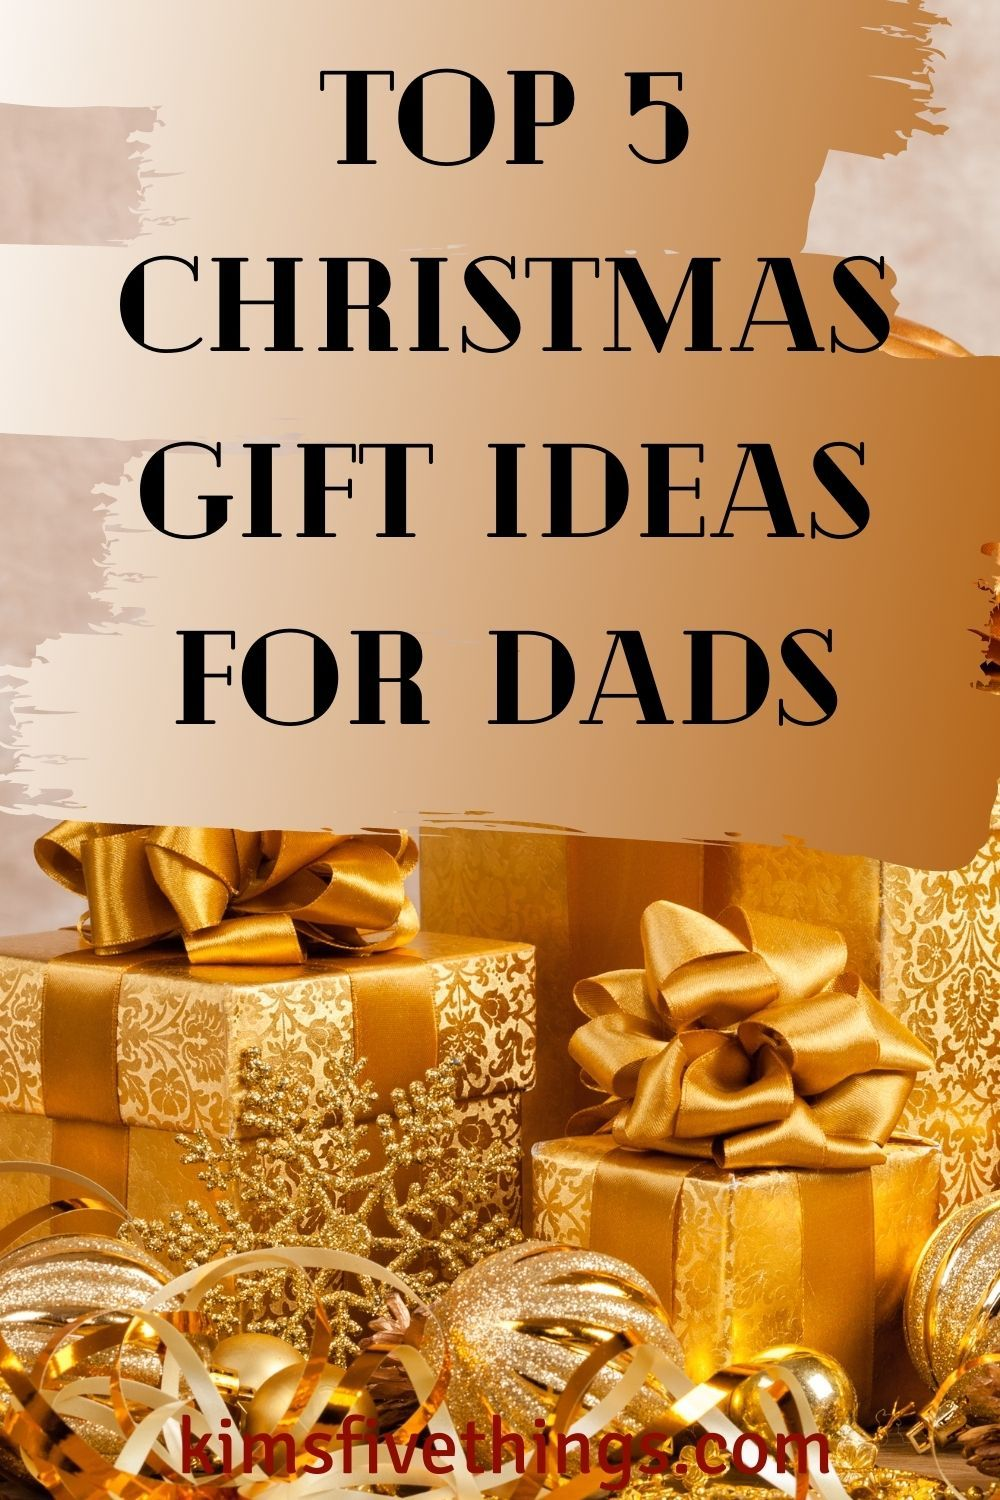 Top 5 Christmas Gifts For Your Dad Meaningful Gifts For Dad Kims Home Ideas In 2020 Top 5 Christmas Gifts Christmas Gift For Dad Gifts